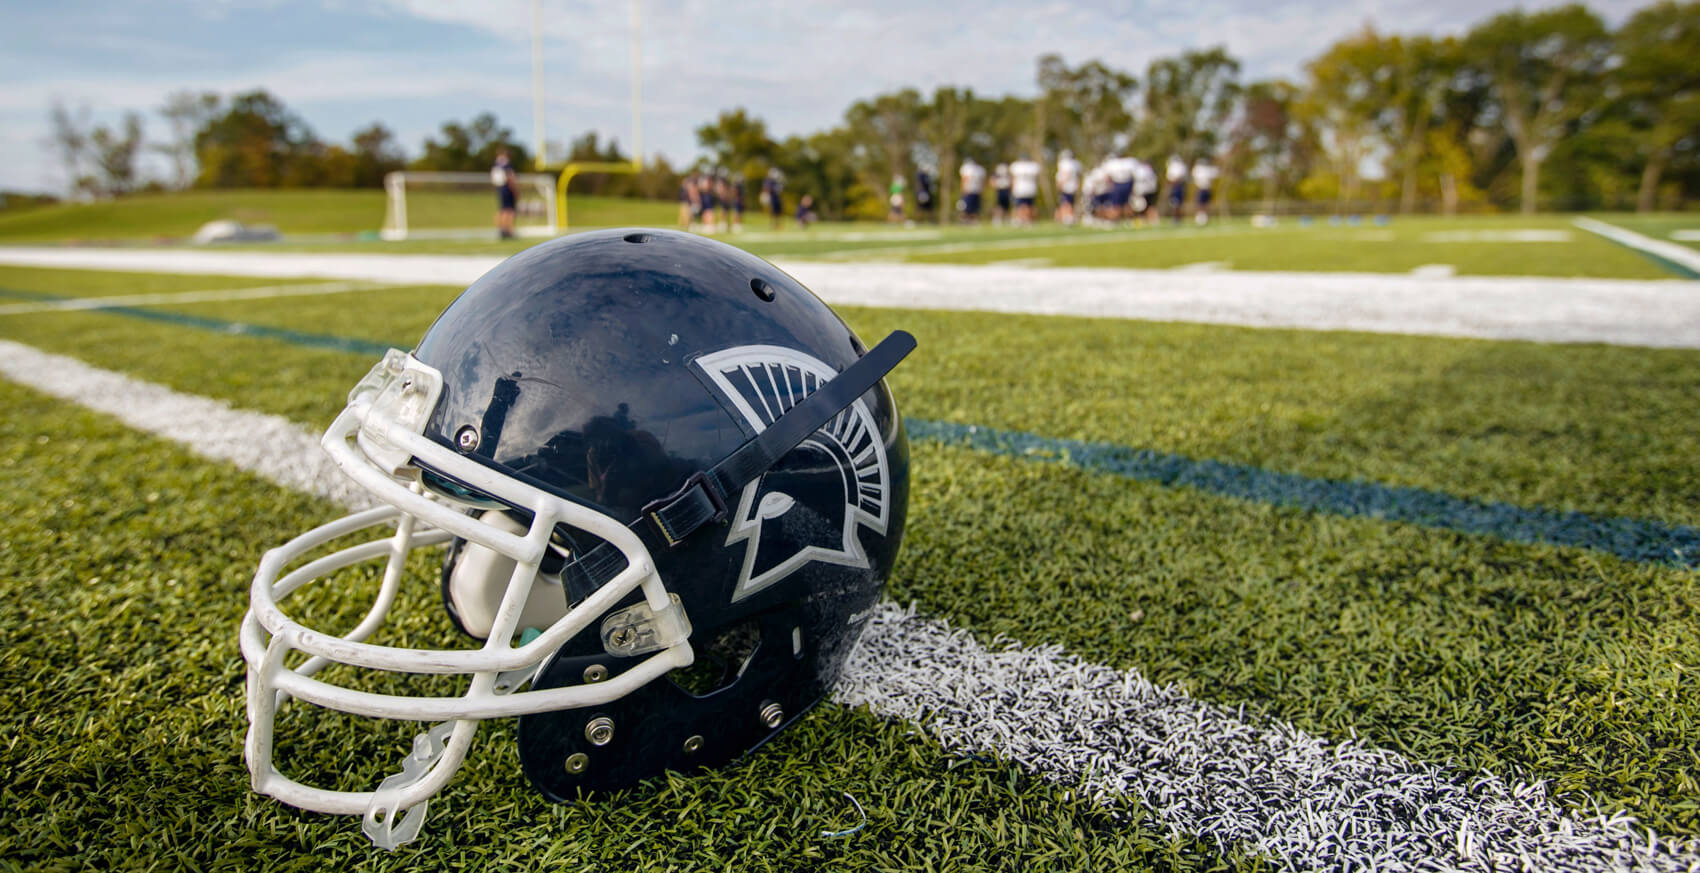 MBU Spartans helmet upright on a football field